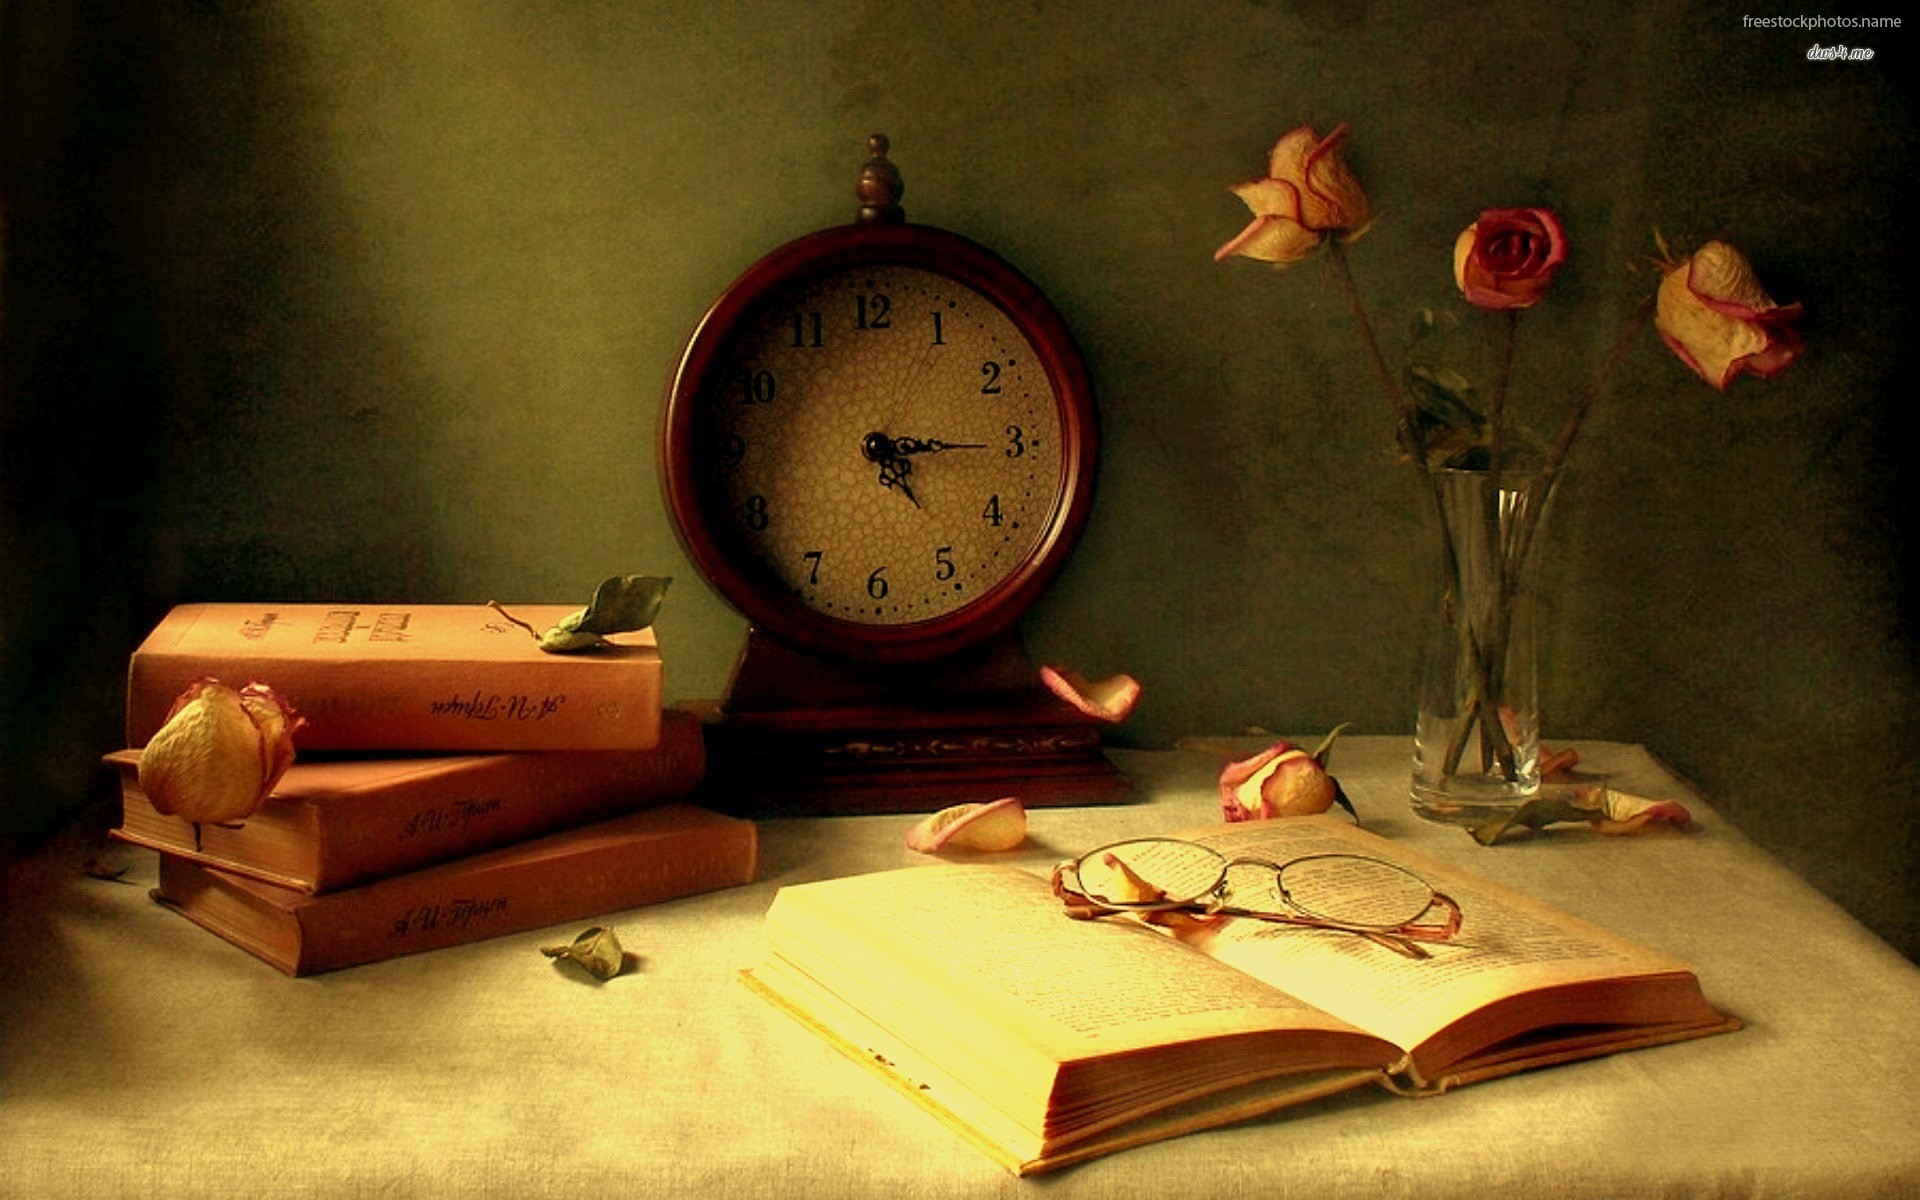 download Books and a old watch on the table